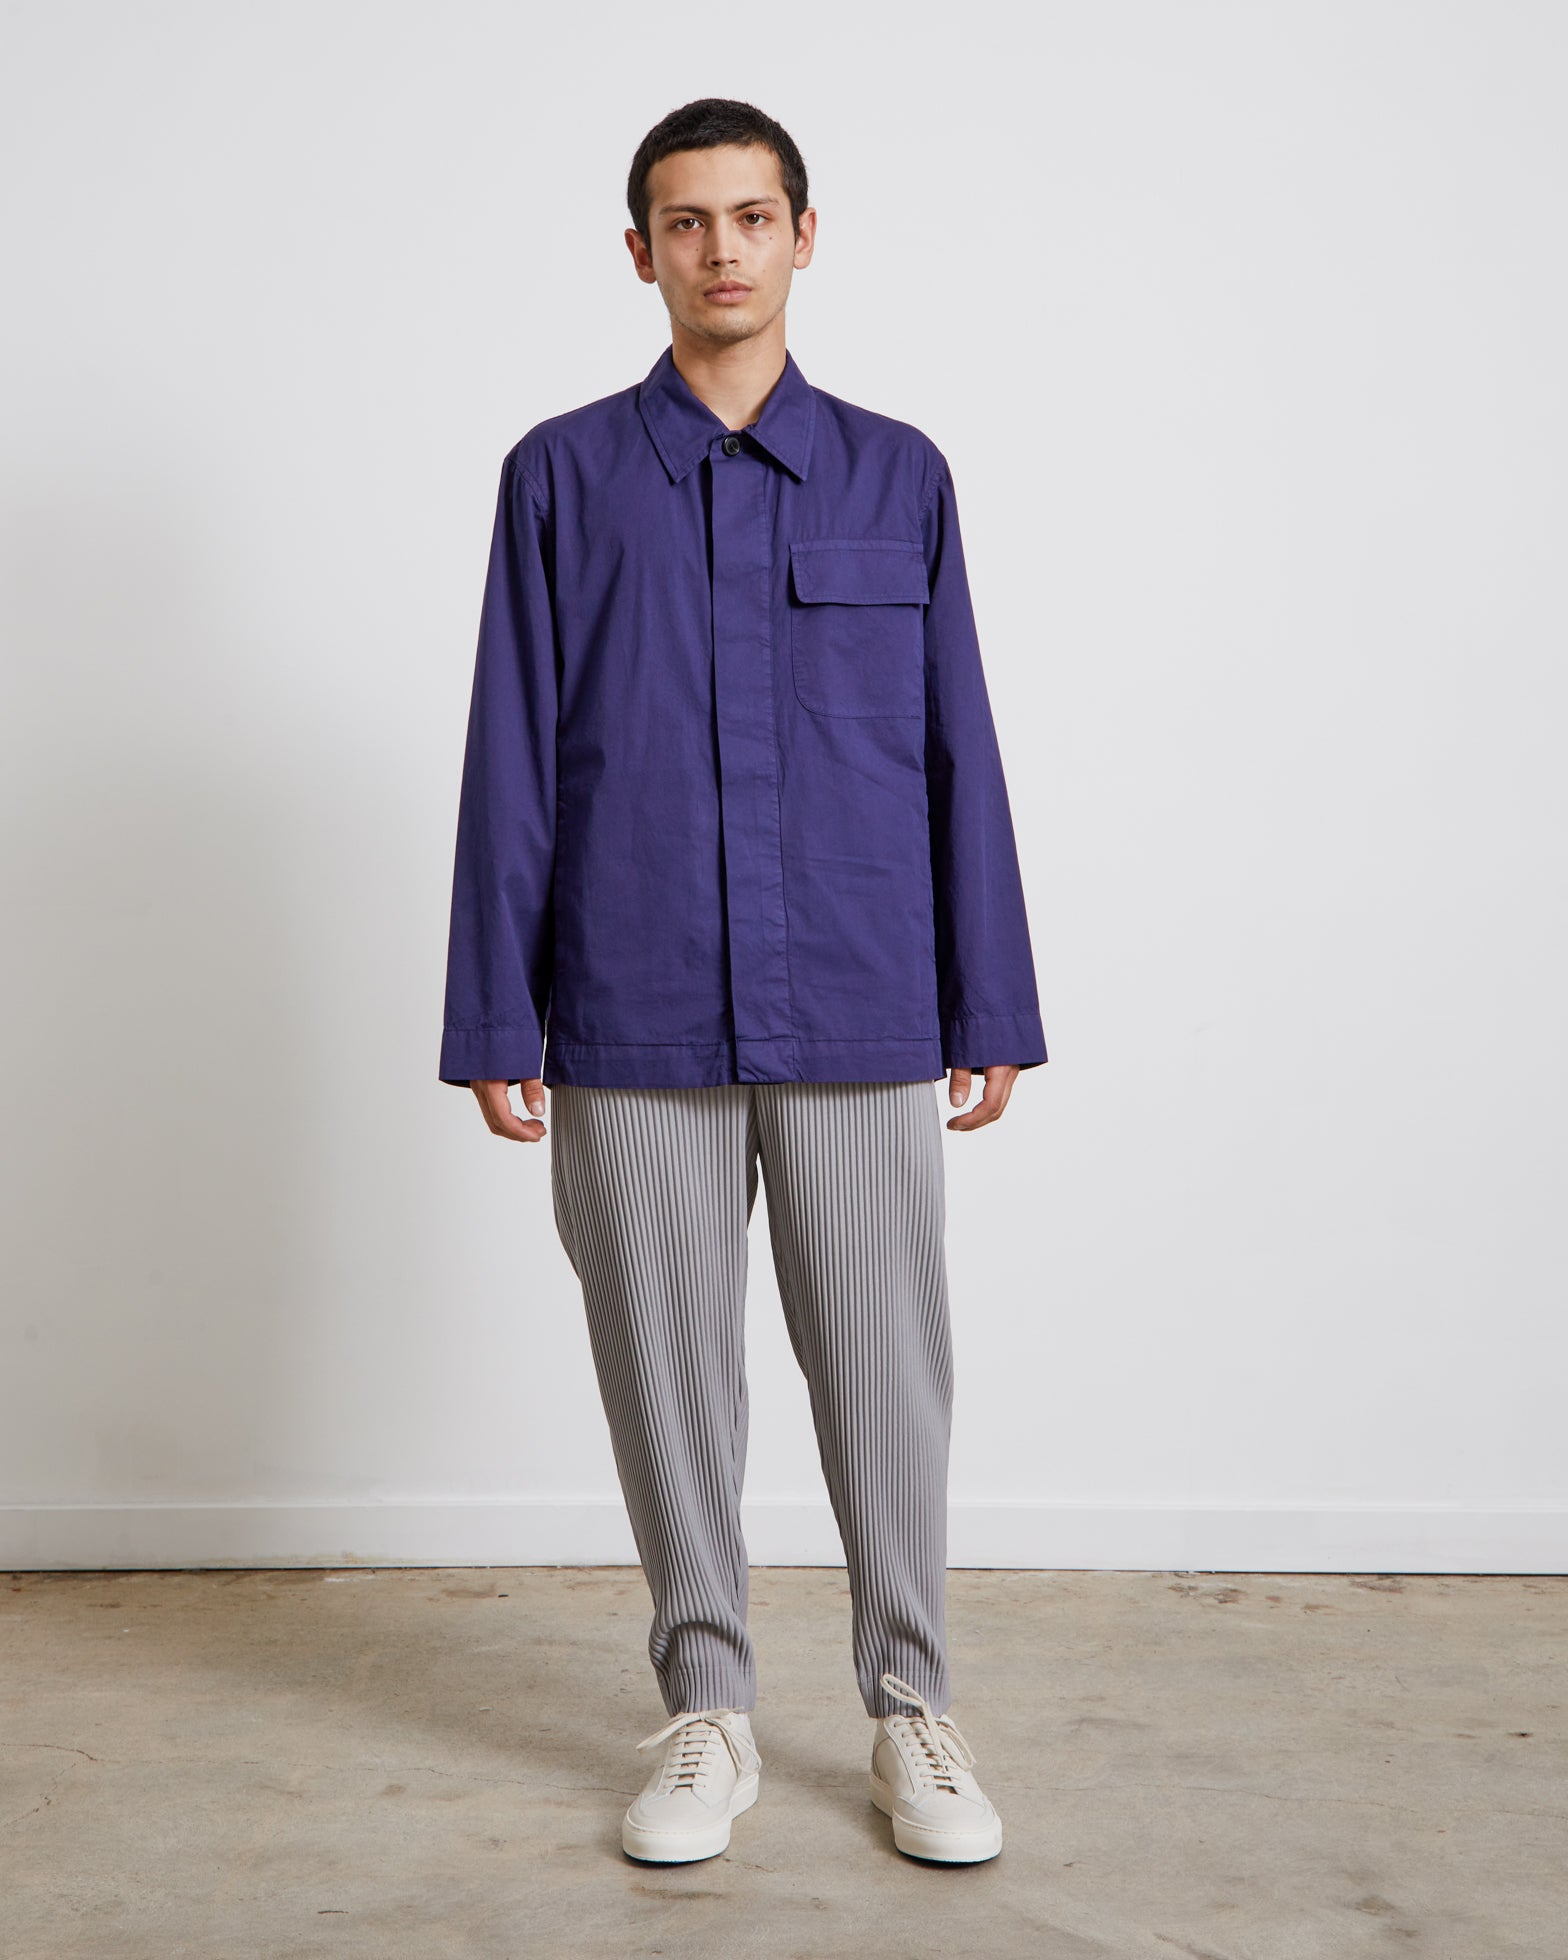 Cadin 2021 M.W. Shirt in Indigo